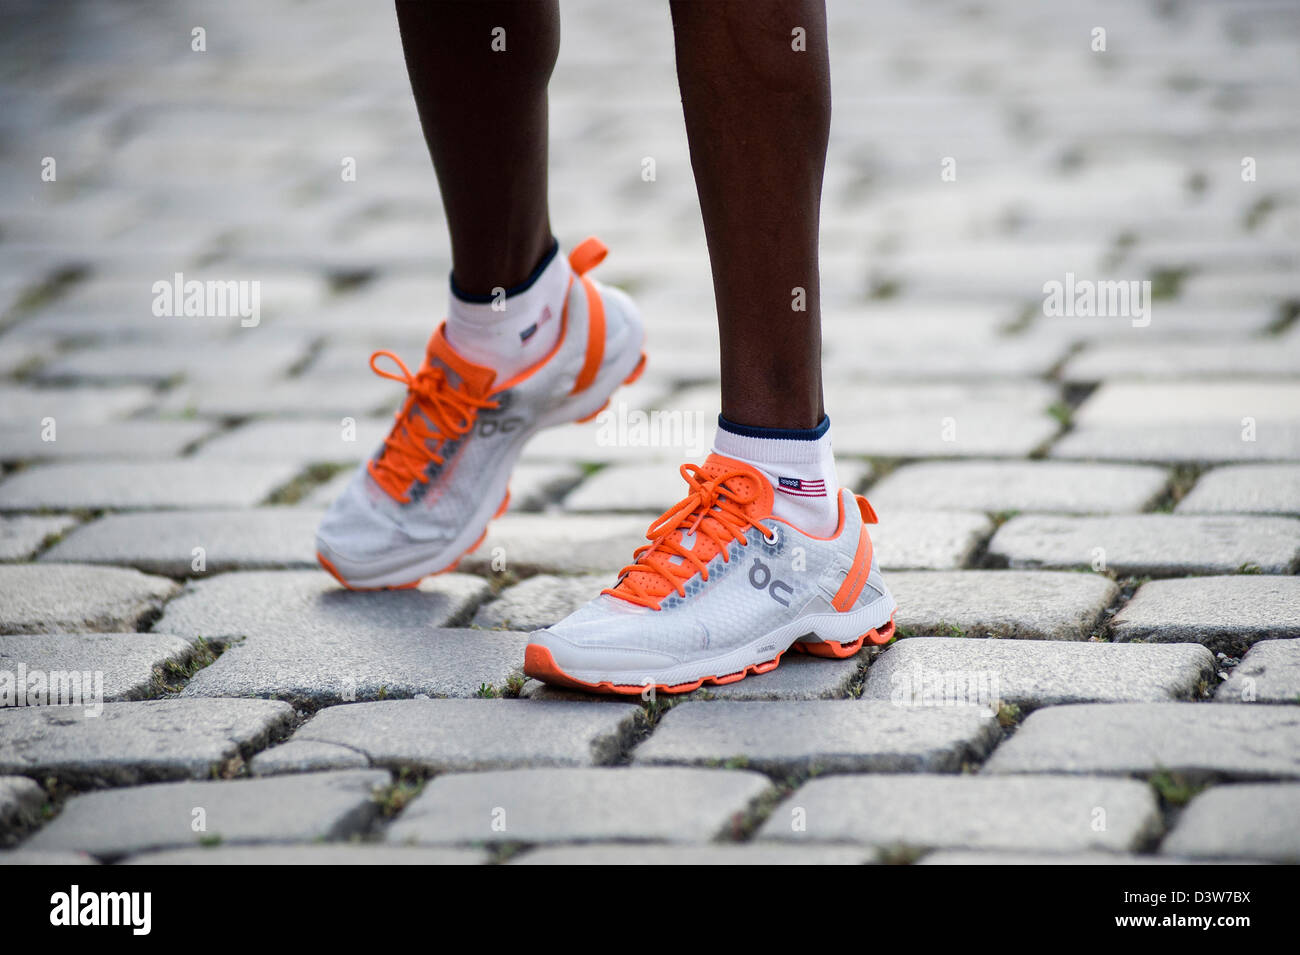 runners feet - Stock Image